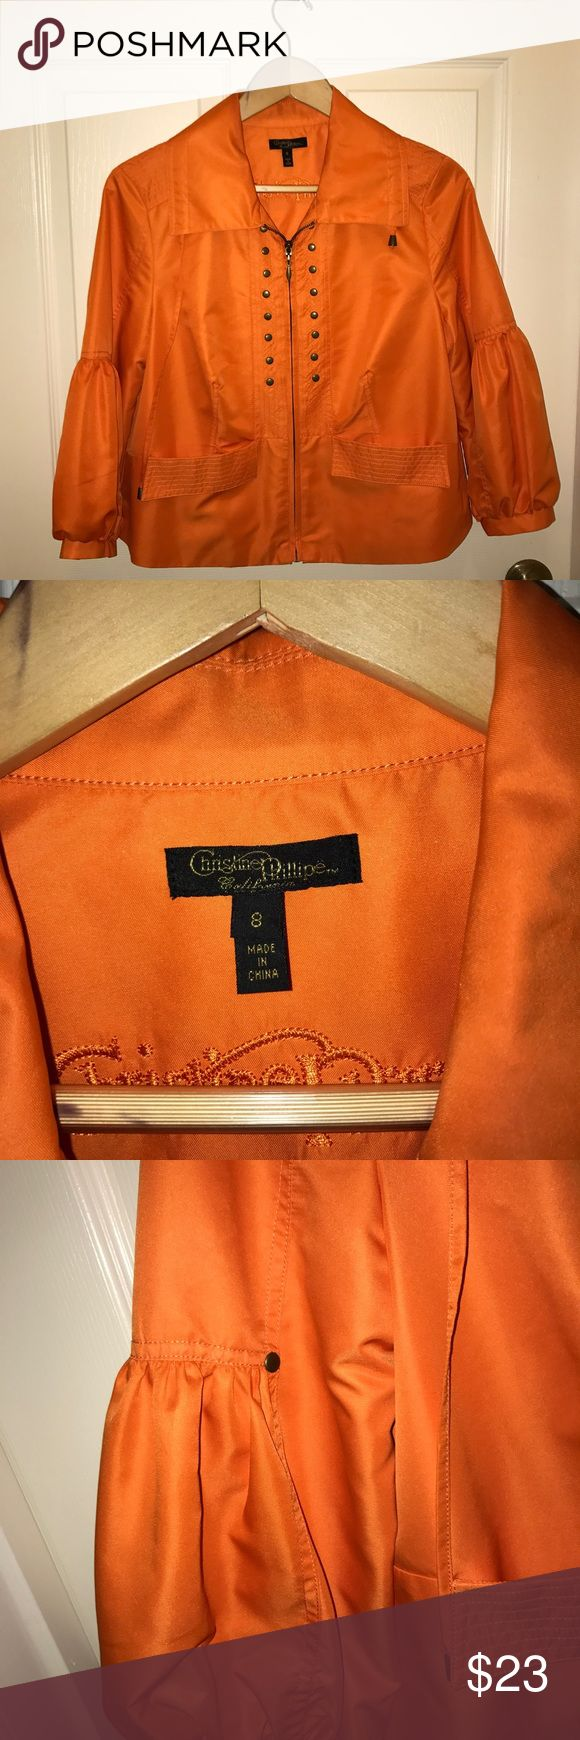 Orange zip up jacket Orange zip up jacket with metal studs and puffy sleeves. Also has a drawstring neckline. christine phillipe collection Jackets & Coats